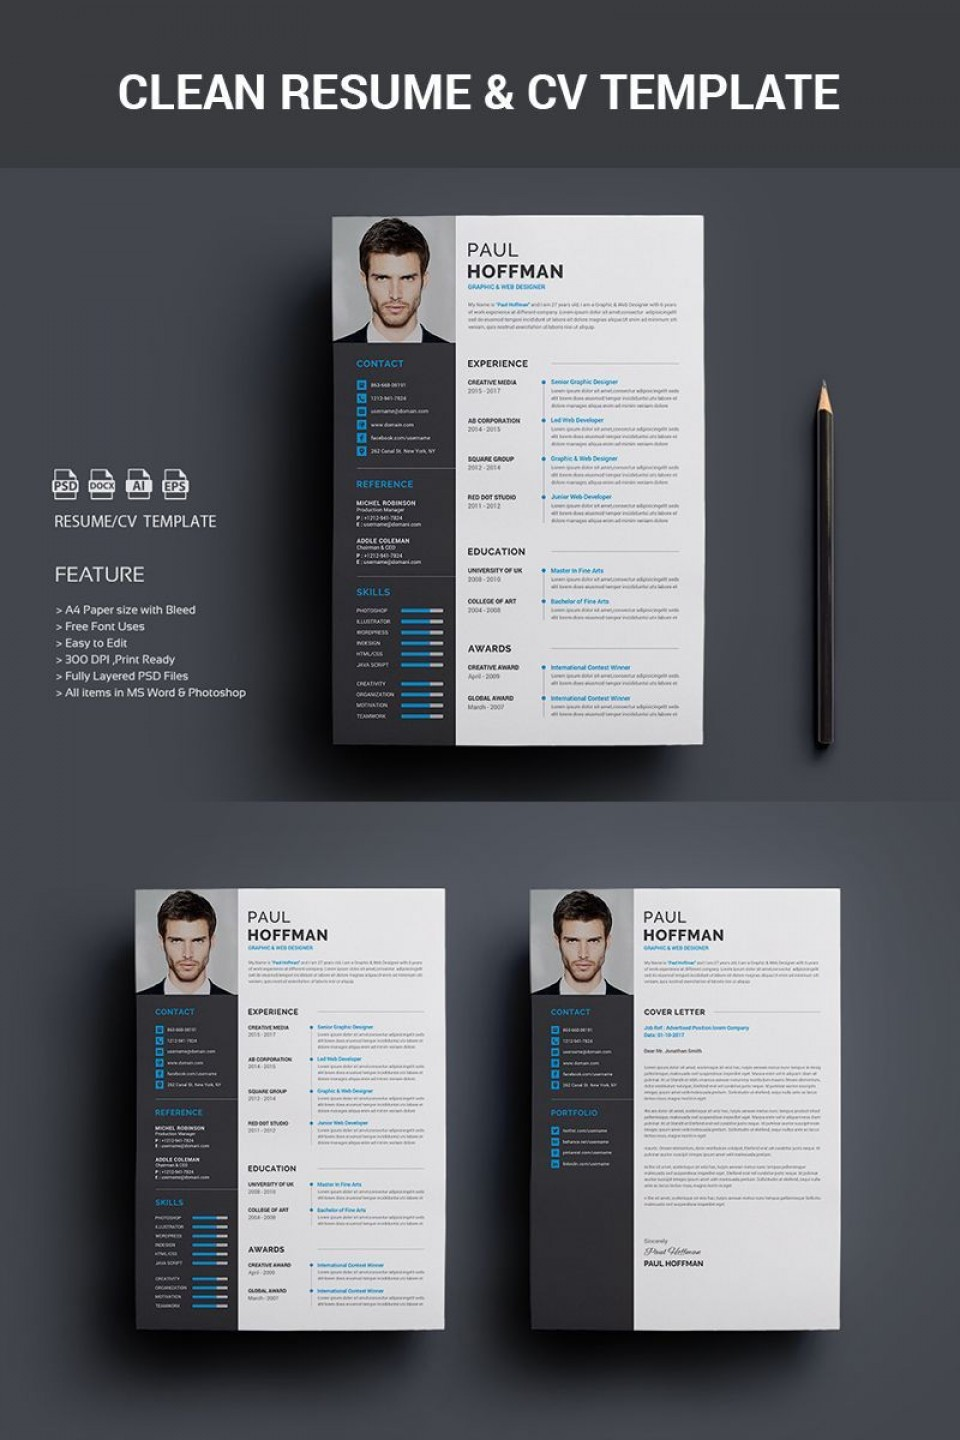 005 Archaicawful How To Create A Resume Template In Photoshop Image 960